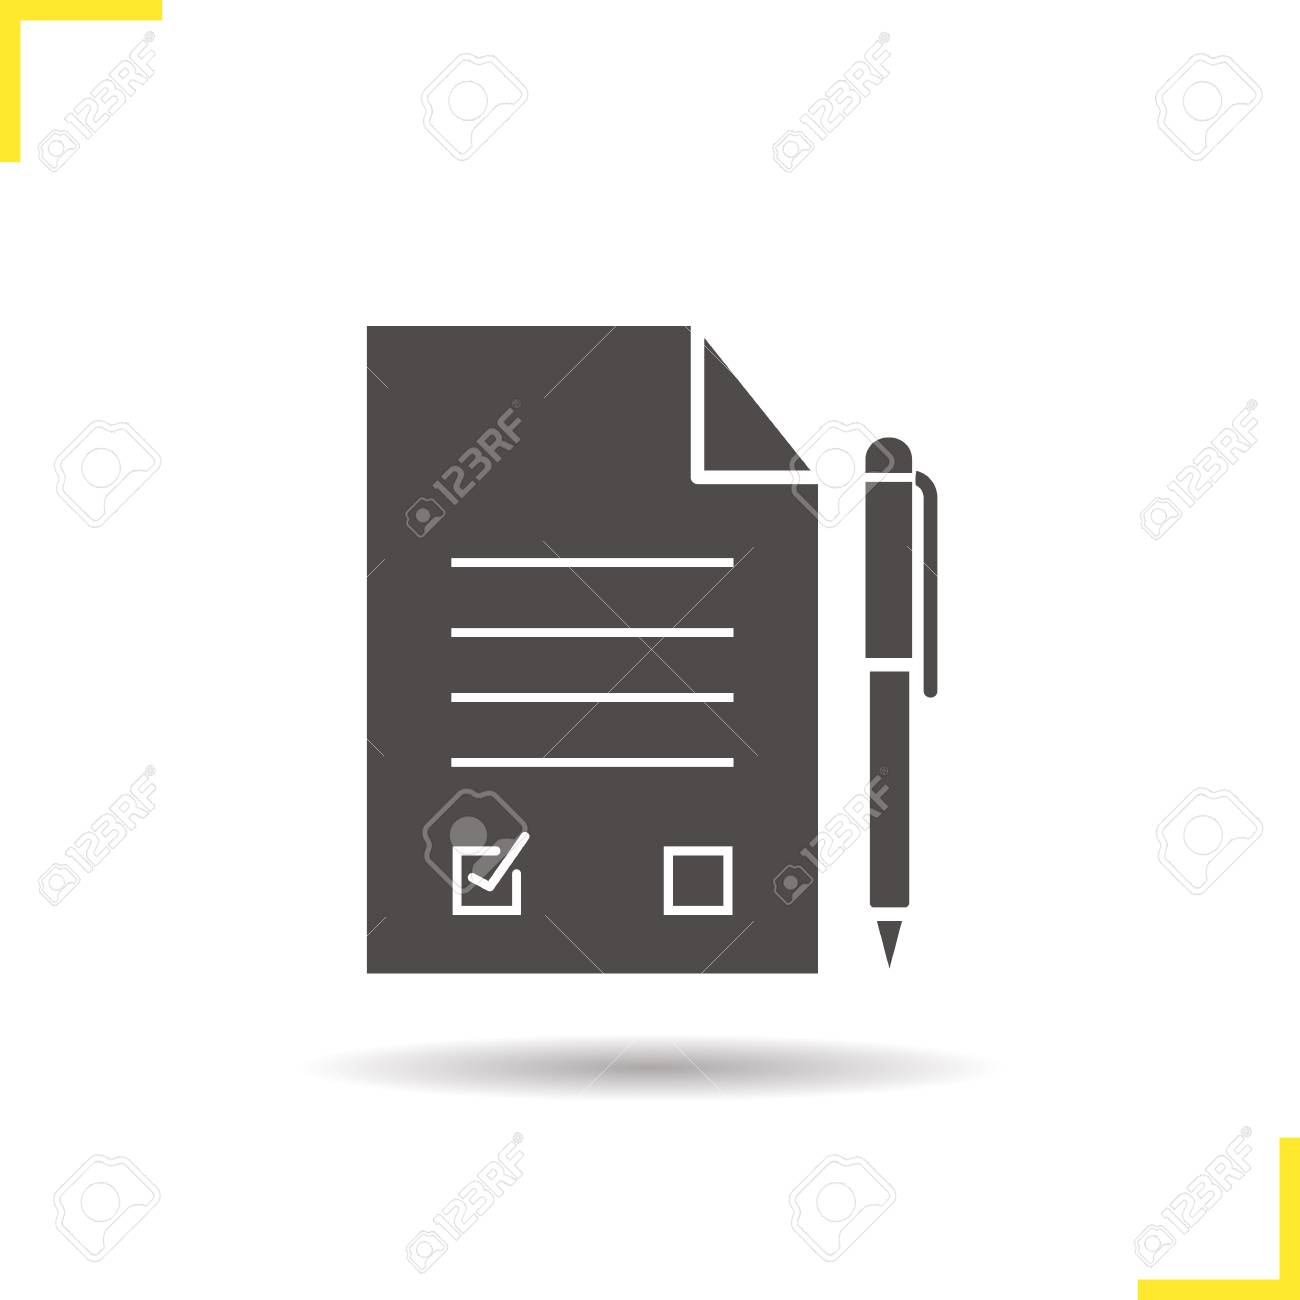 Signed contract with pen icon drop shadow agreement silhouette signed contract with pen icon drop shadow agreement silhouette symbol application form negative biocorpaavc Choice Image